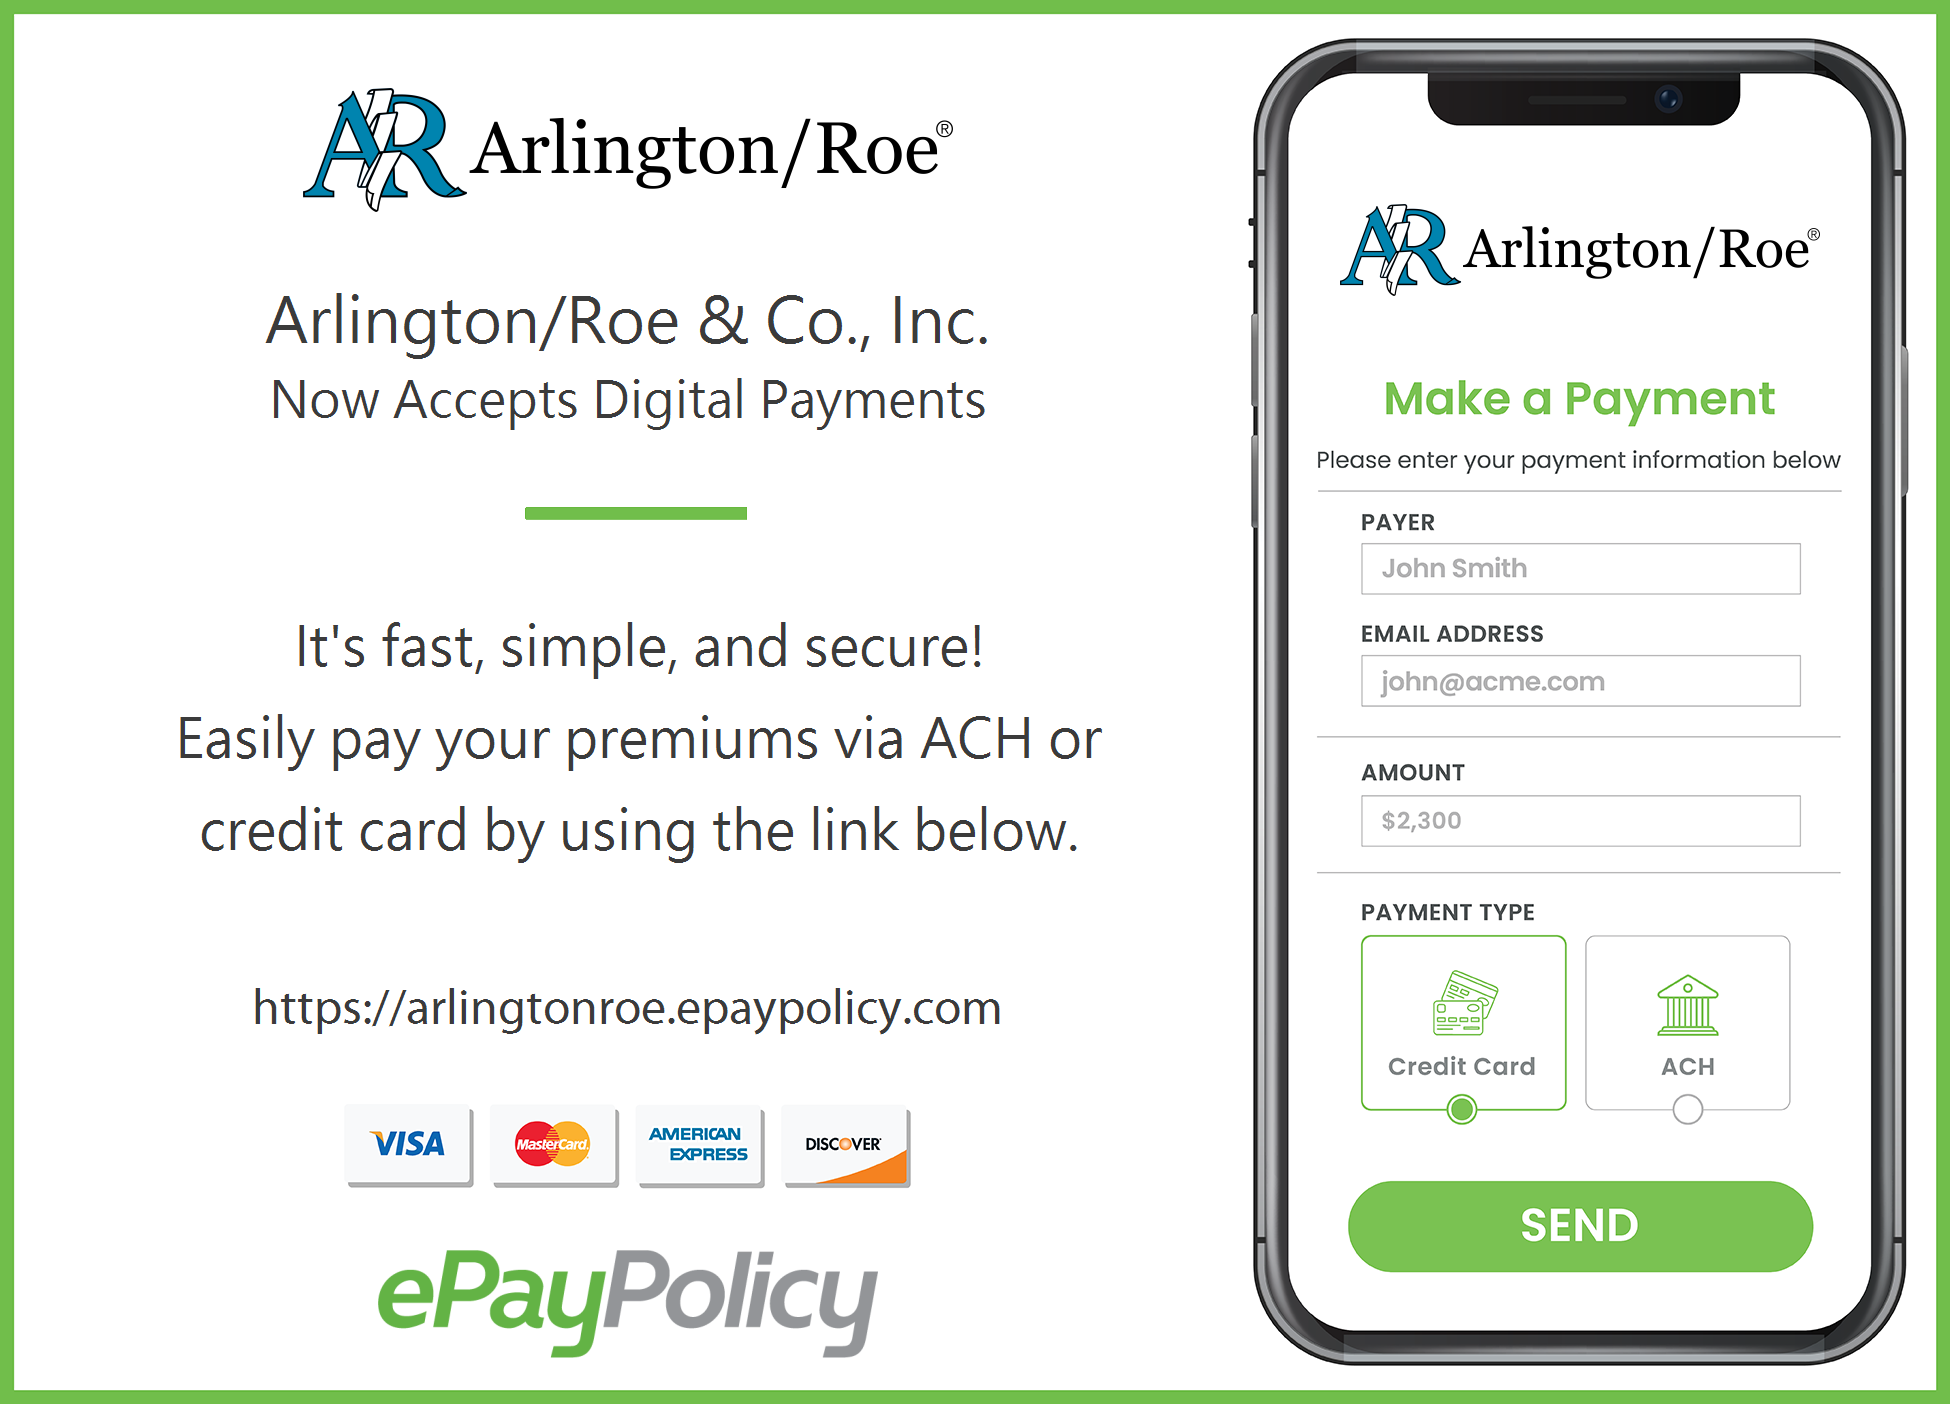 image of Arlington/Roe payment system on a smart phone